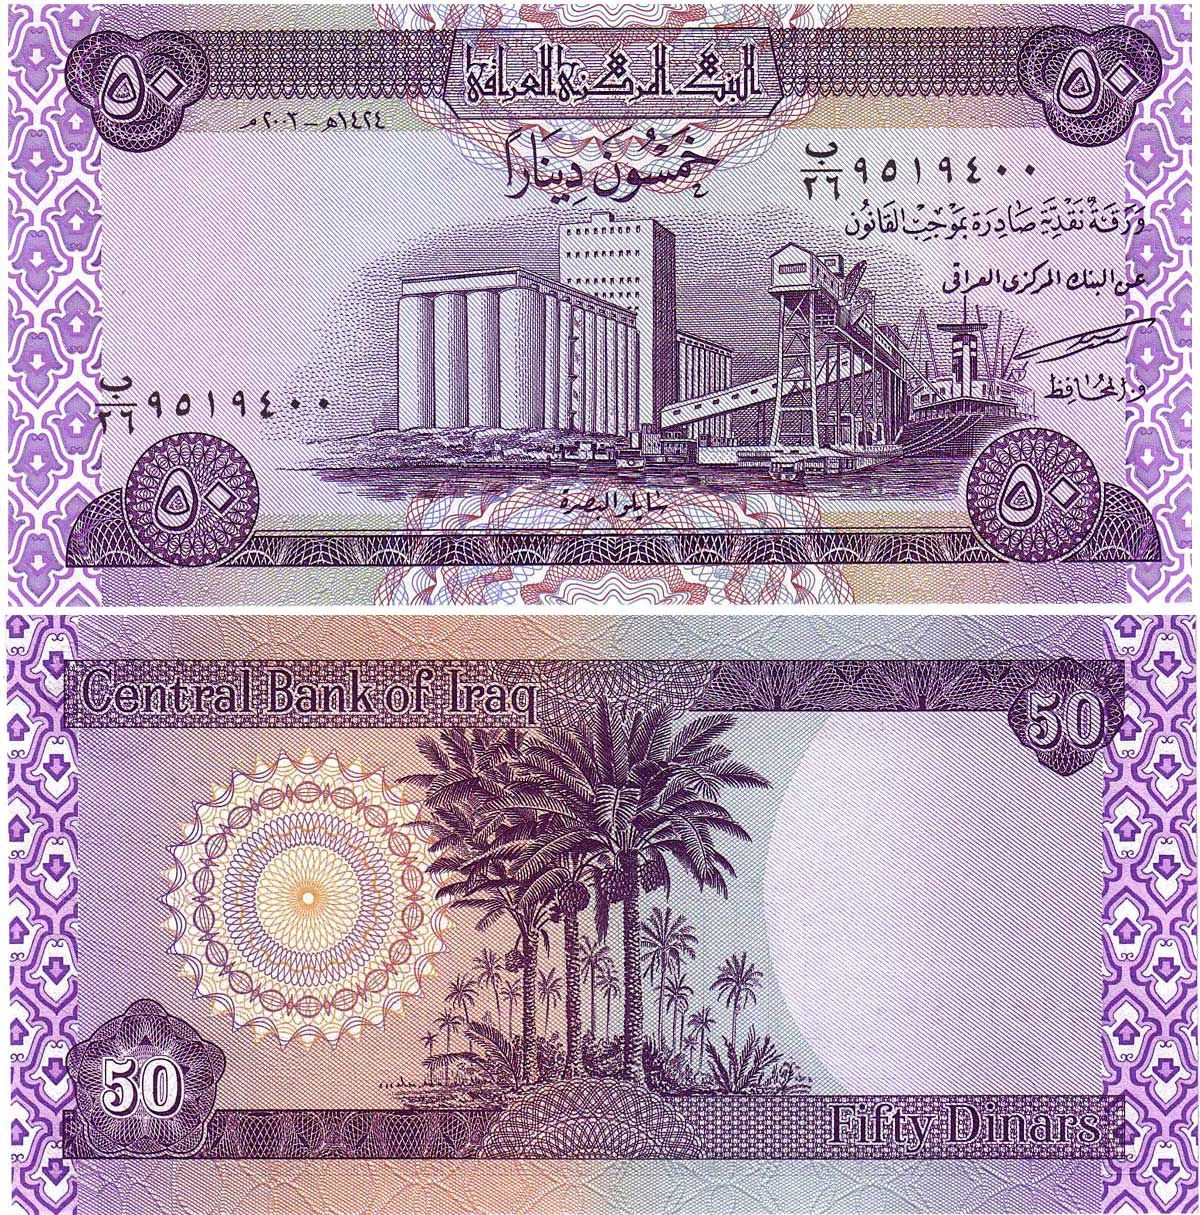 50 Dinars Currency Notes